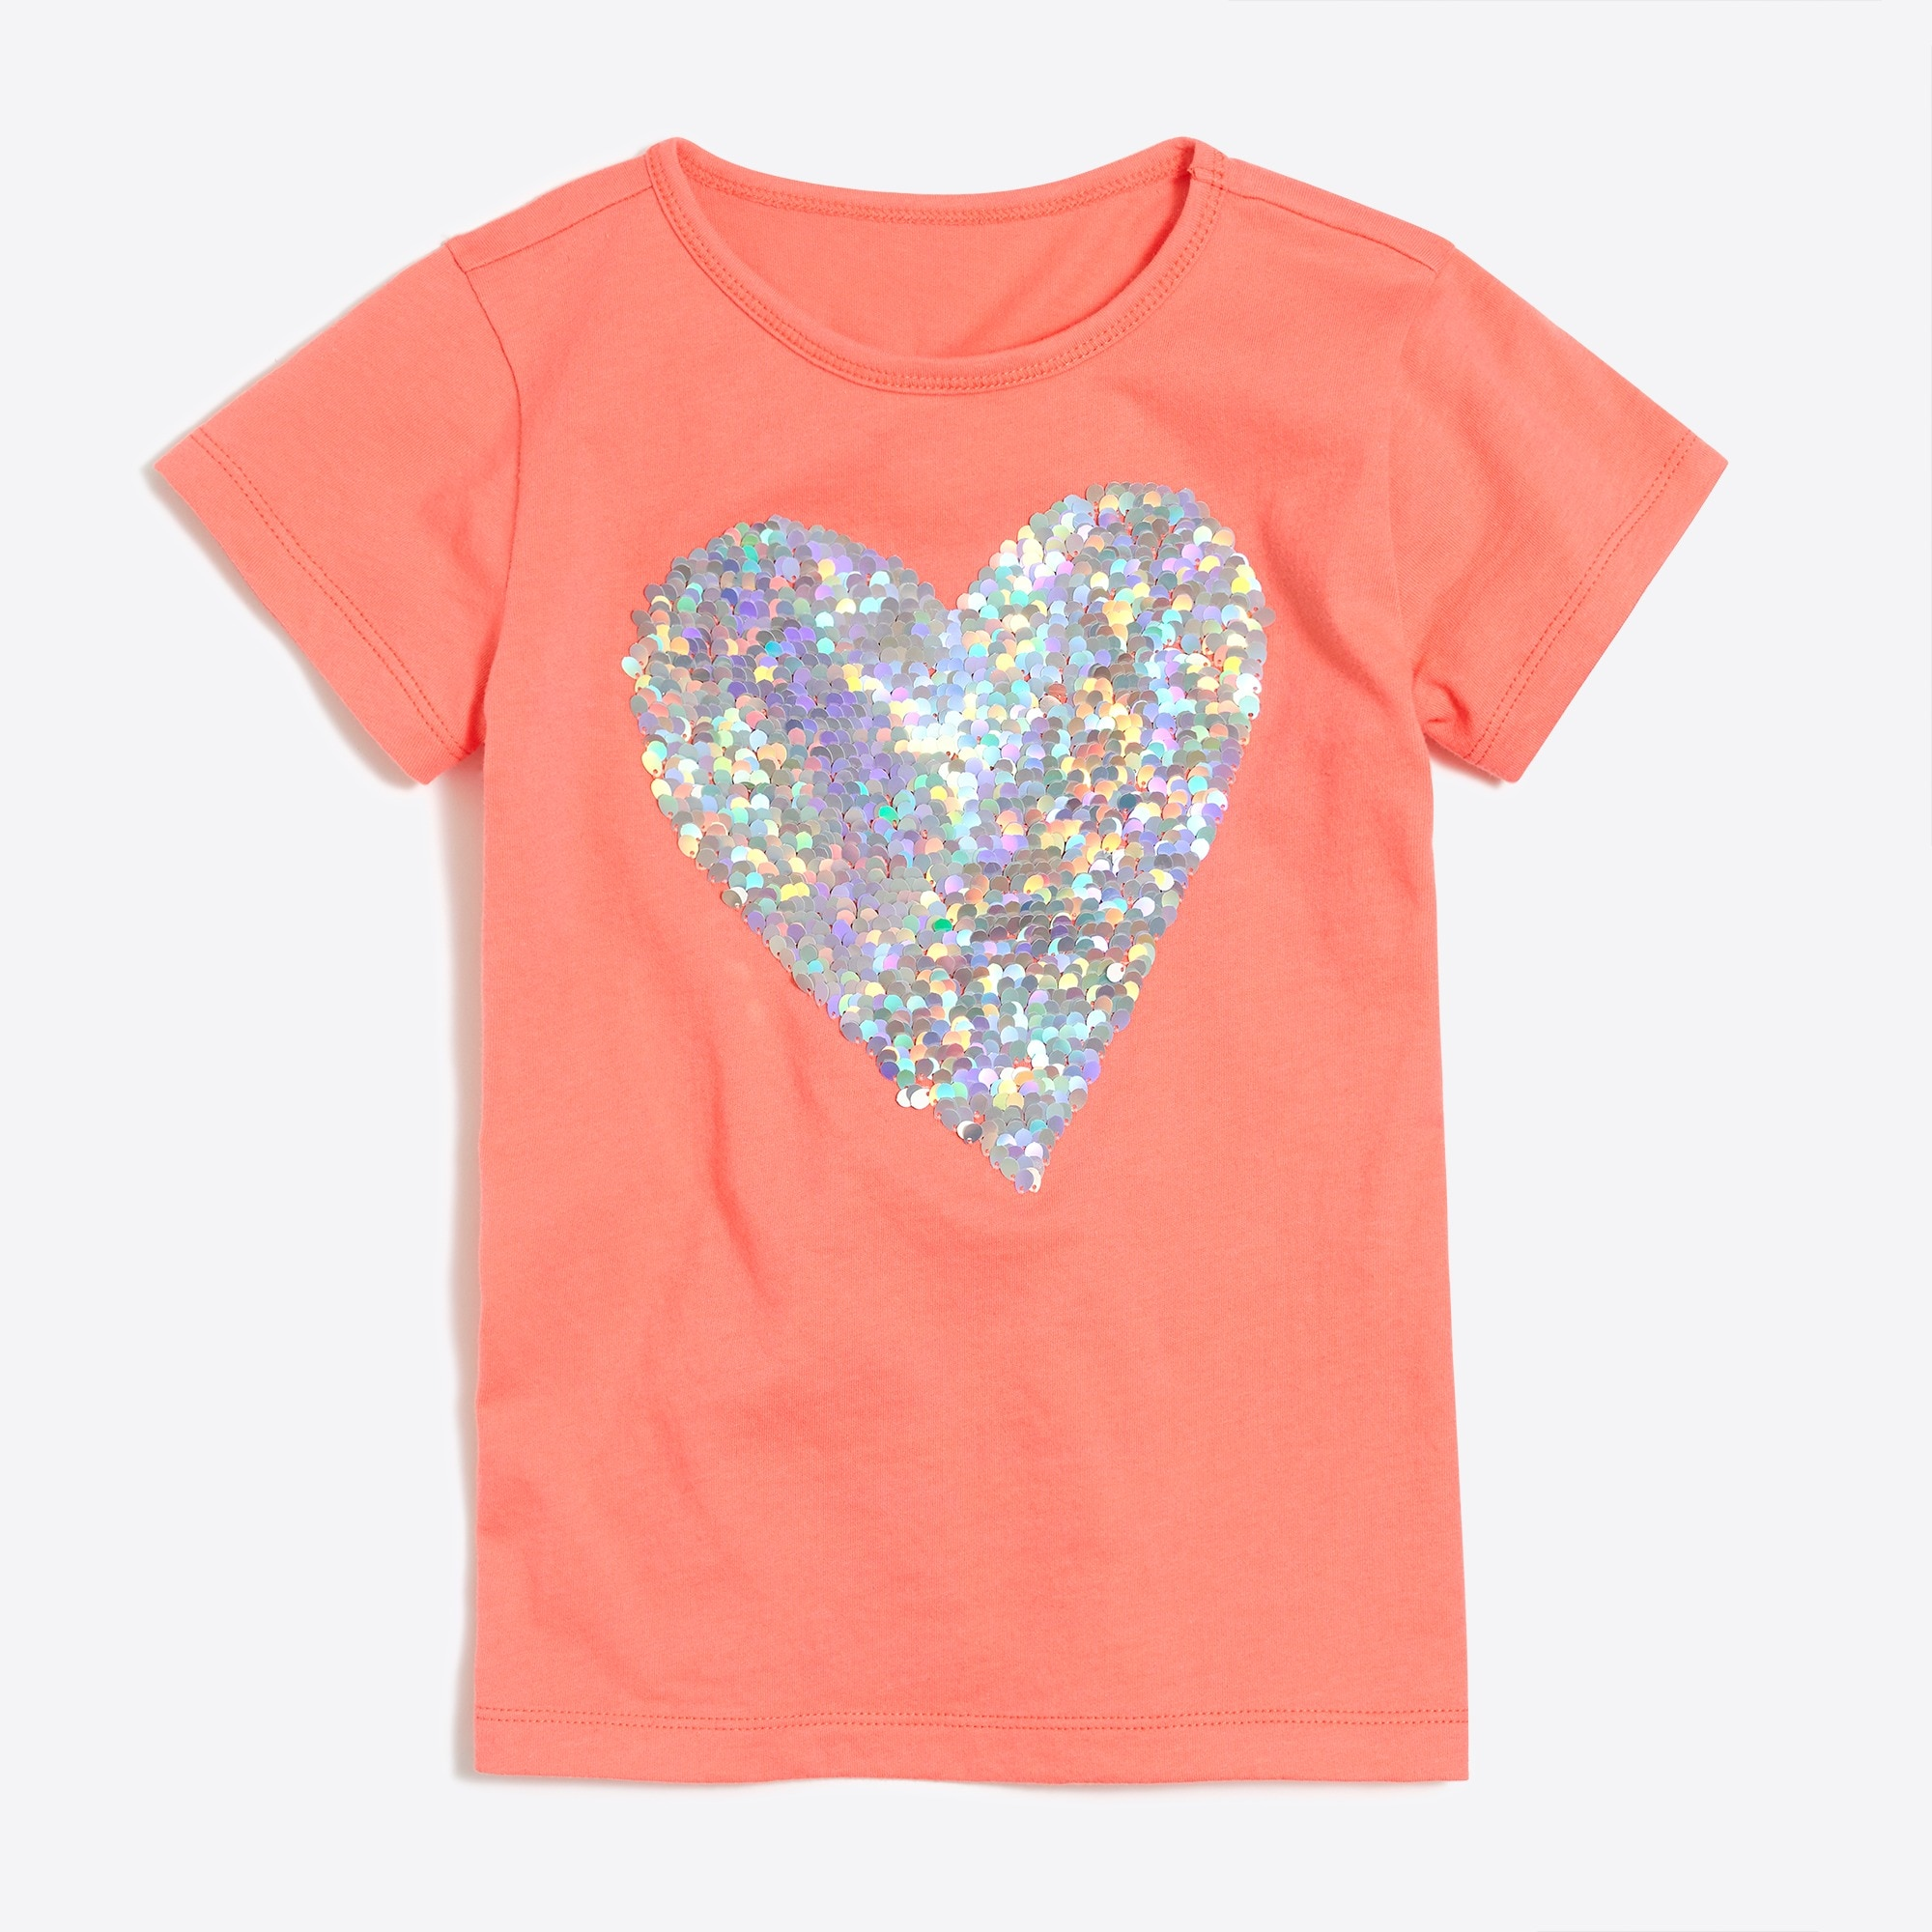 Girls' sequin heart keepsake T-shirt factorygirls shirts, t-shirts & tops c